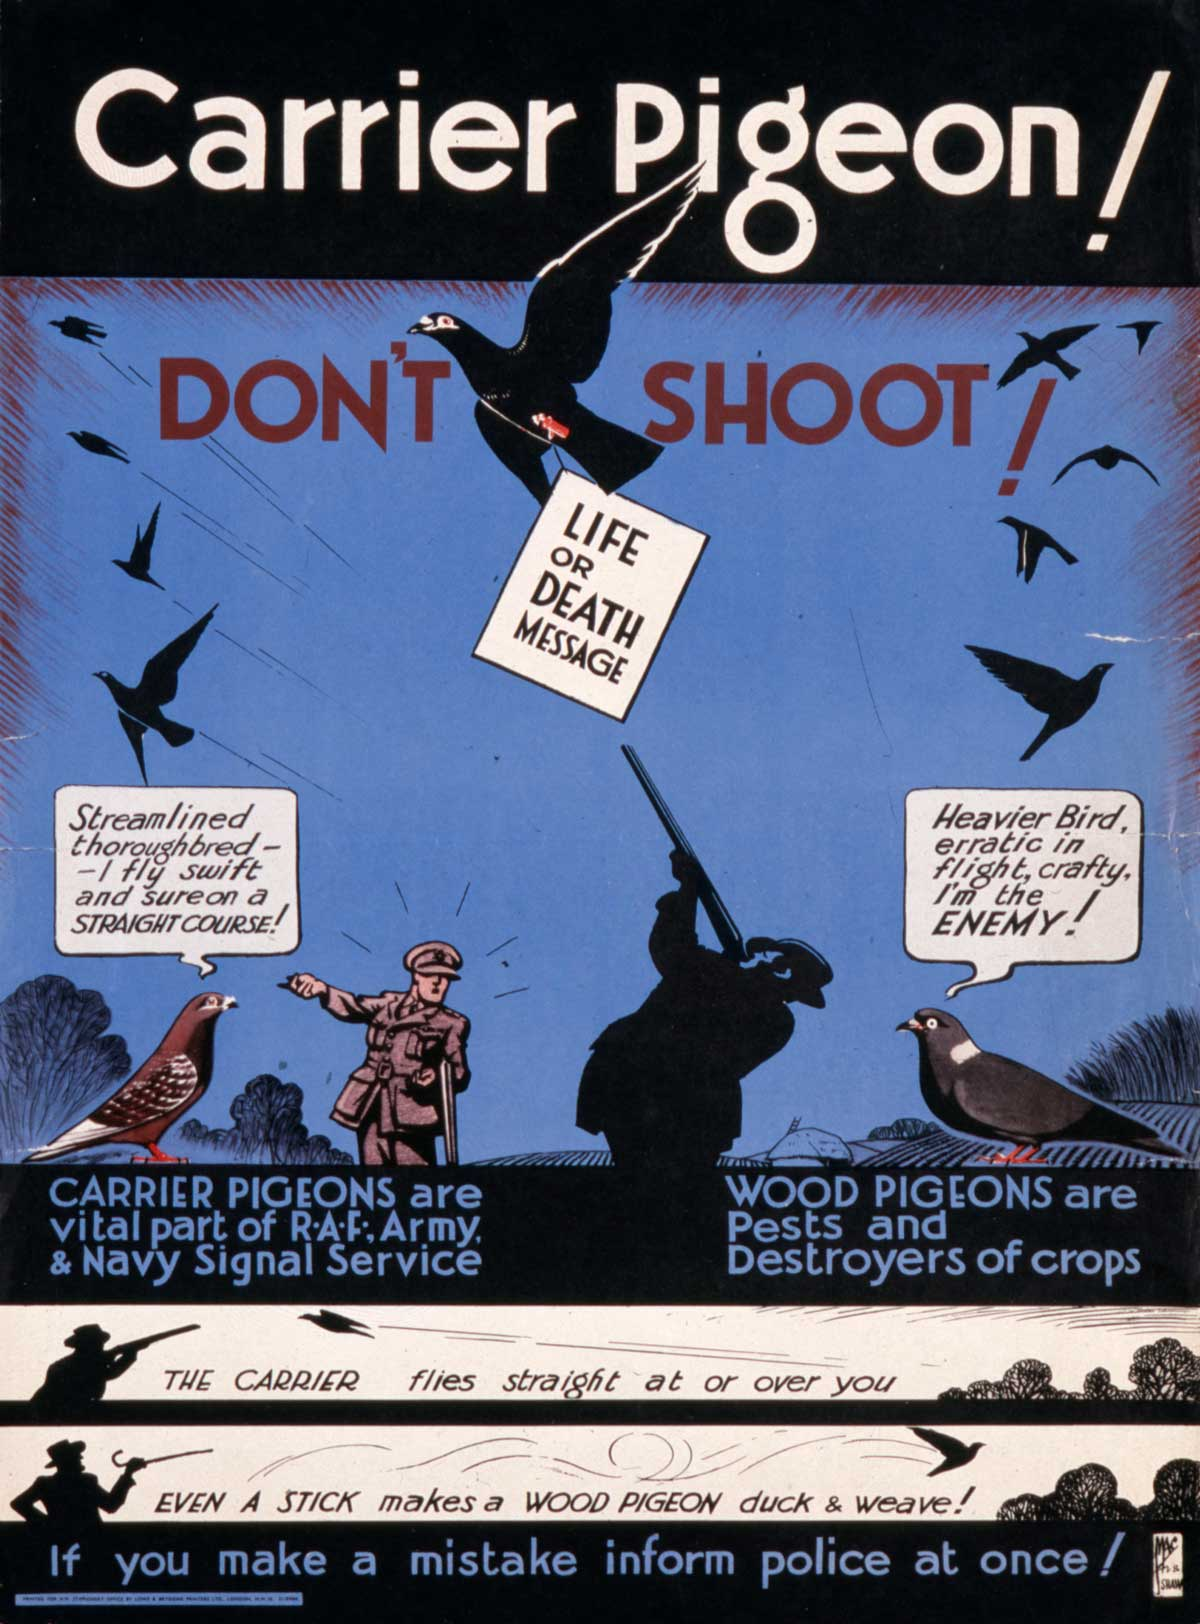 wartime poster warning people of the dangers of shooting carrier pigeons, 1940s.